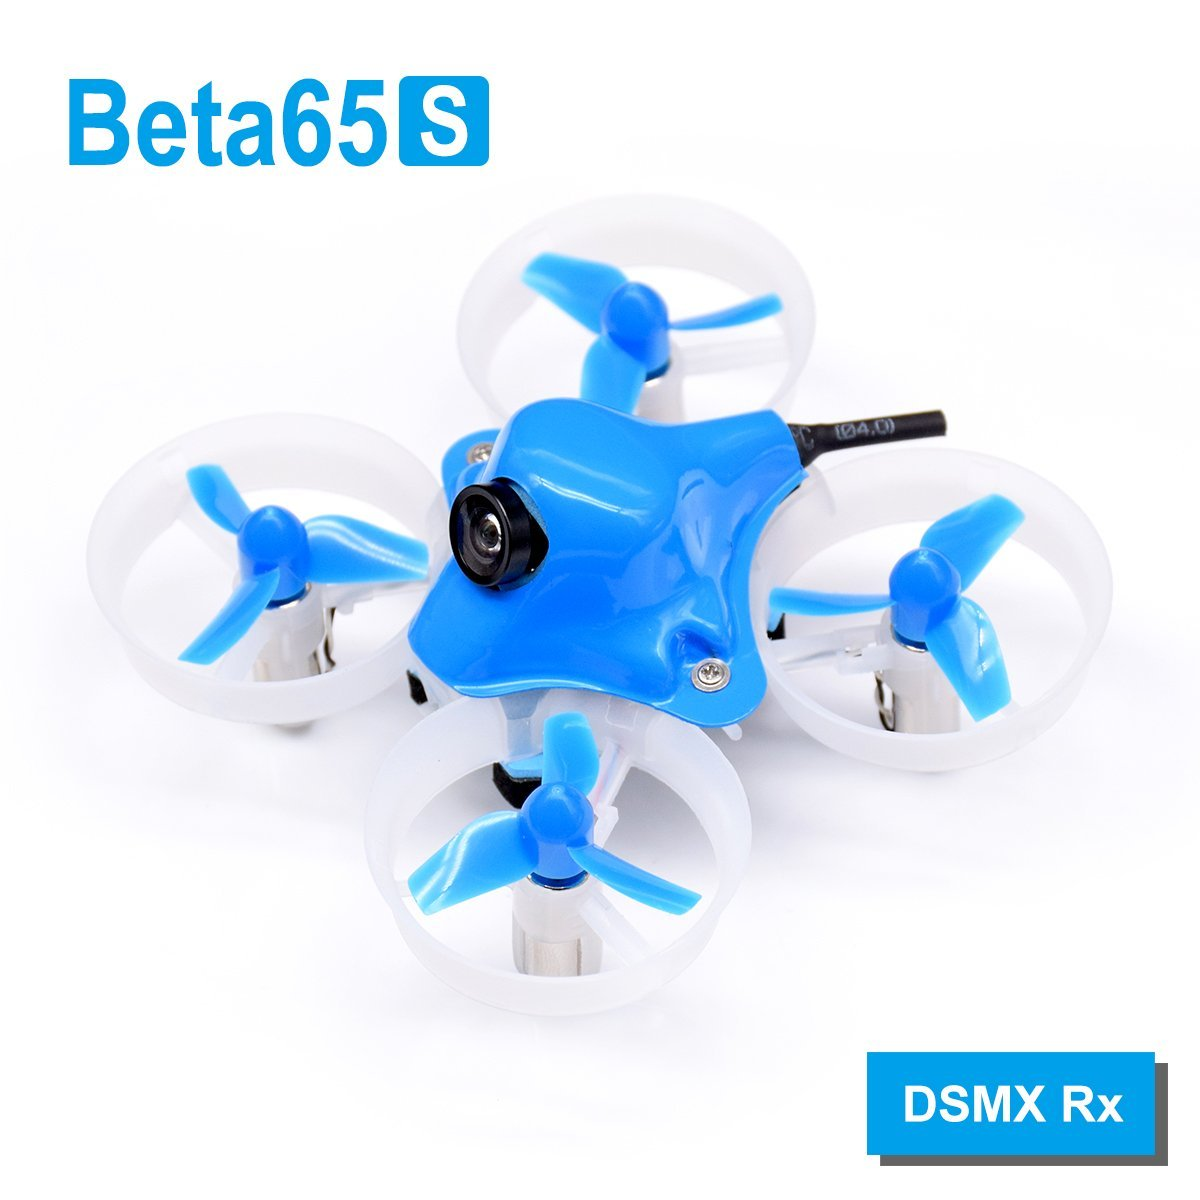 Beta65S BNF Micro Whoop Quadcopter DSMX Rx Version with 17500KV 7x16mm motors радиоуправляемый квадрокоптер betafpv beta65s whoop quad frsky rx bnf